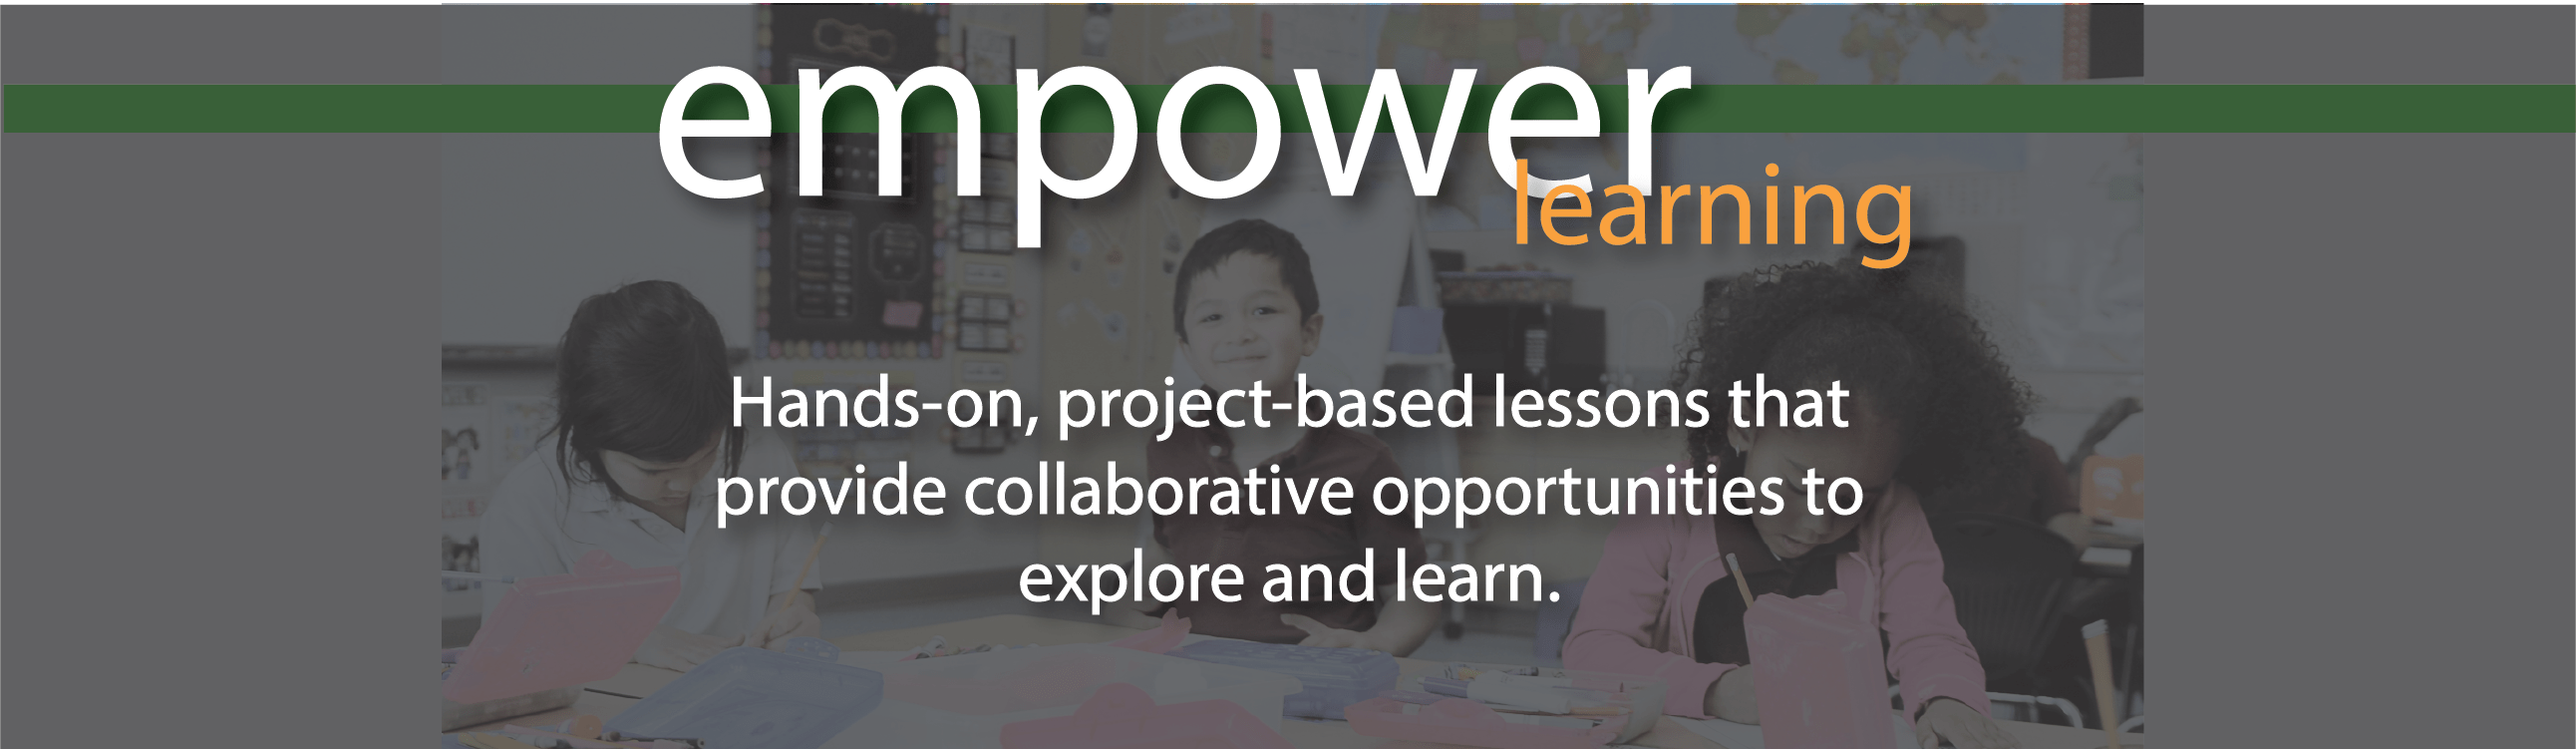 Empower learning at High Point Academy a tuition-free charter